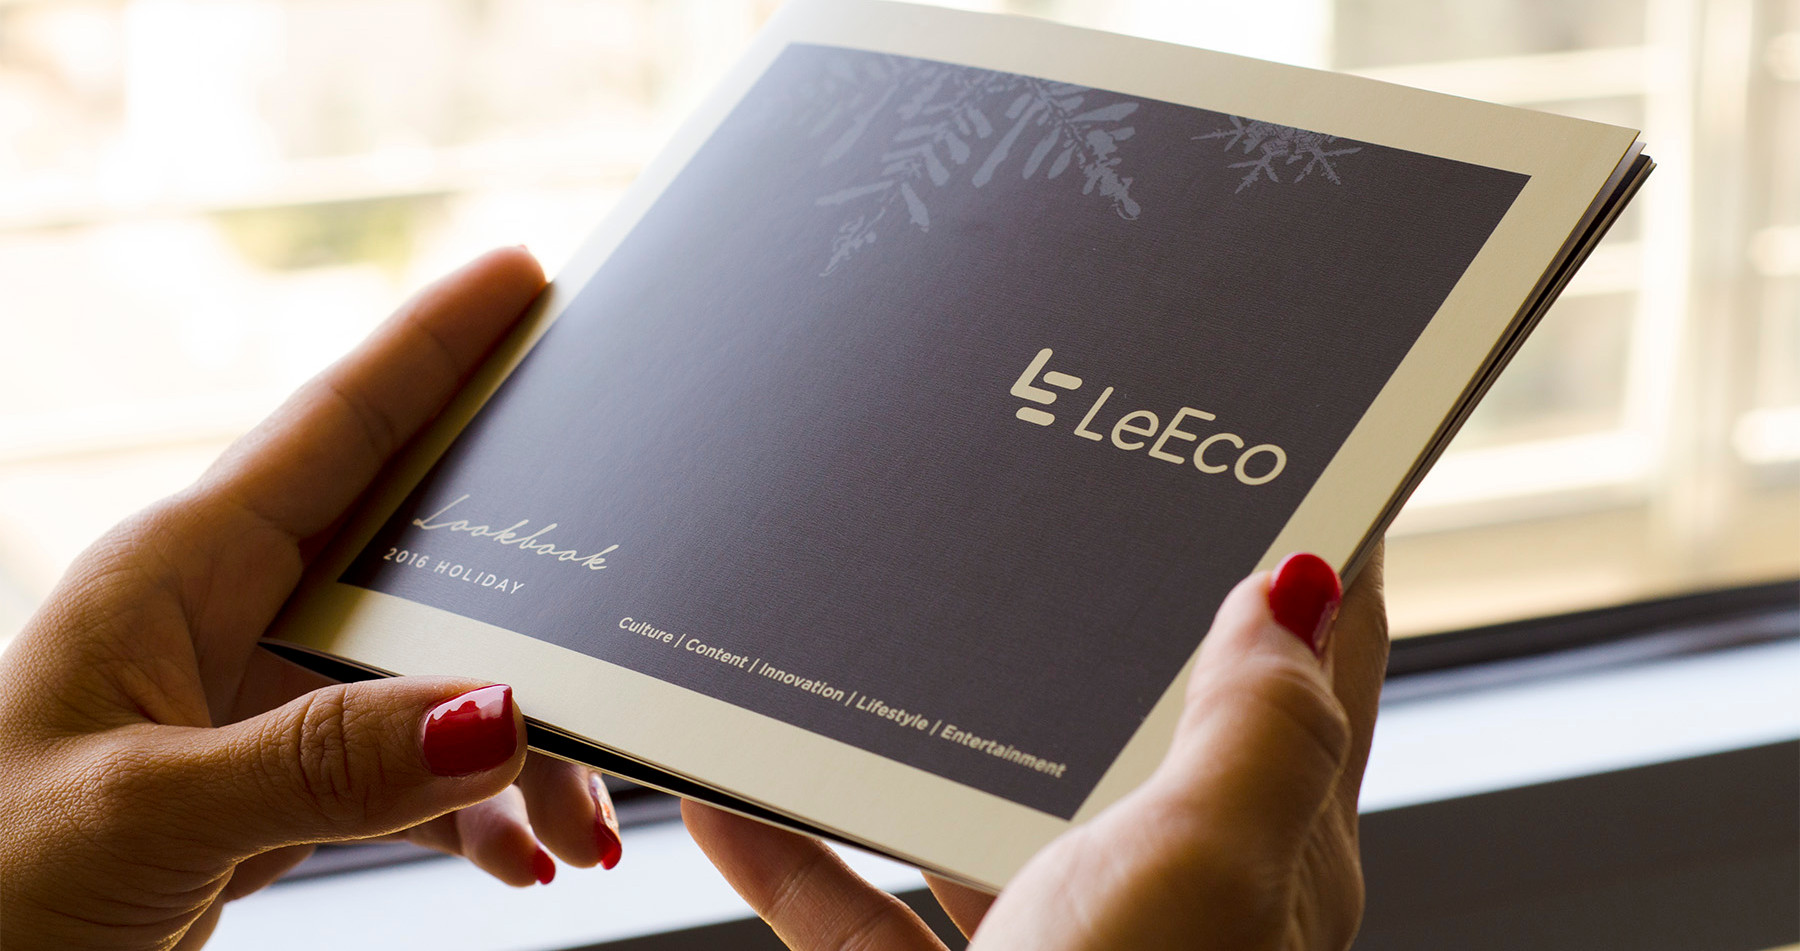 LeEco LookBook